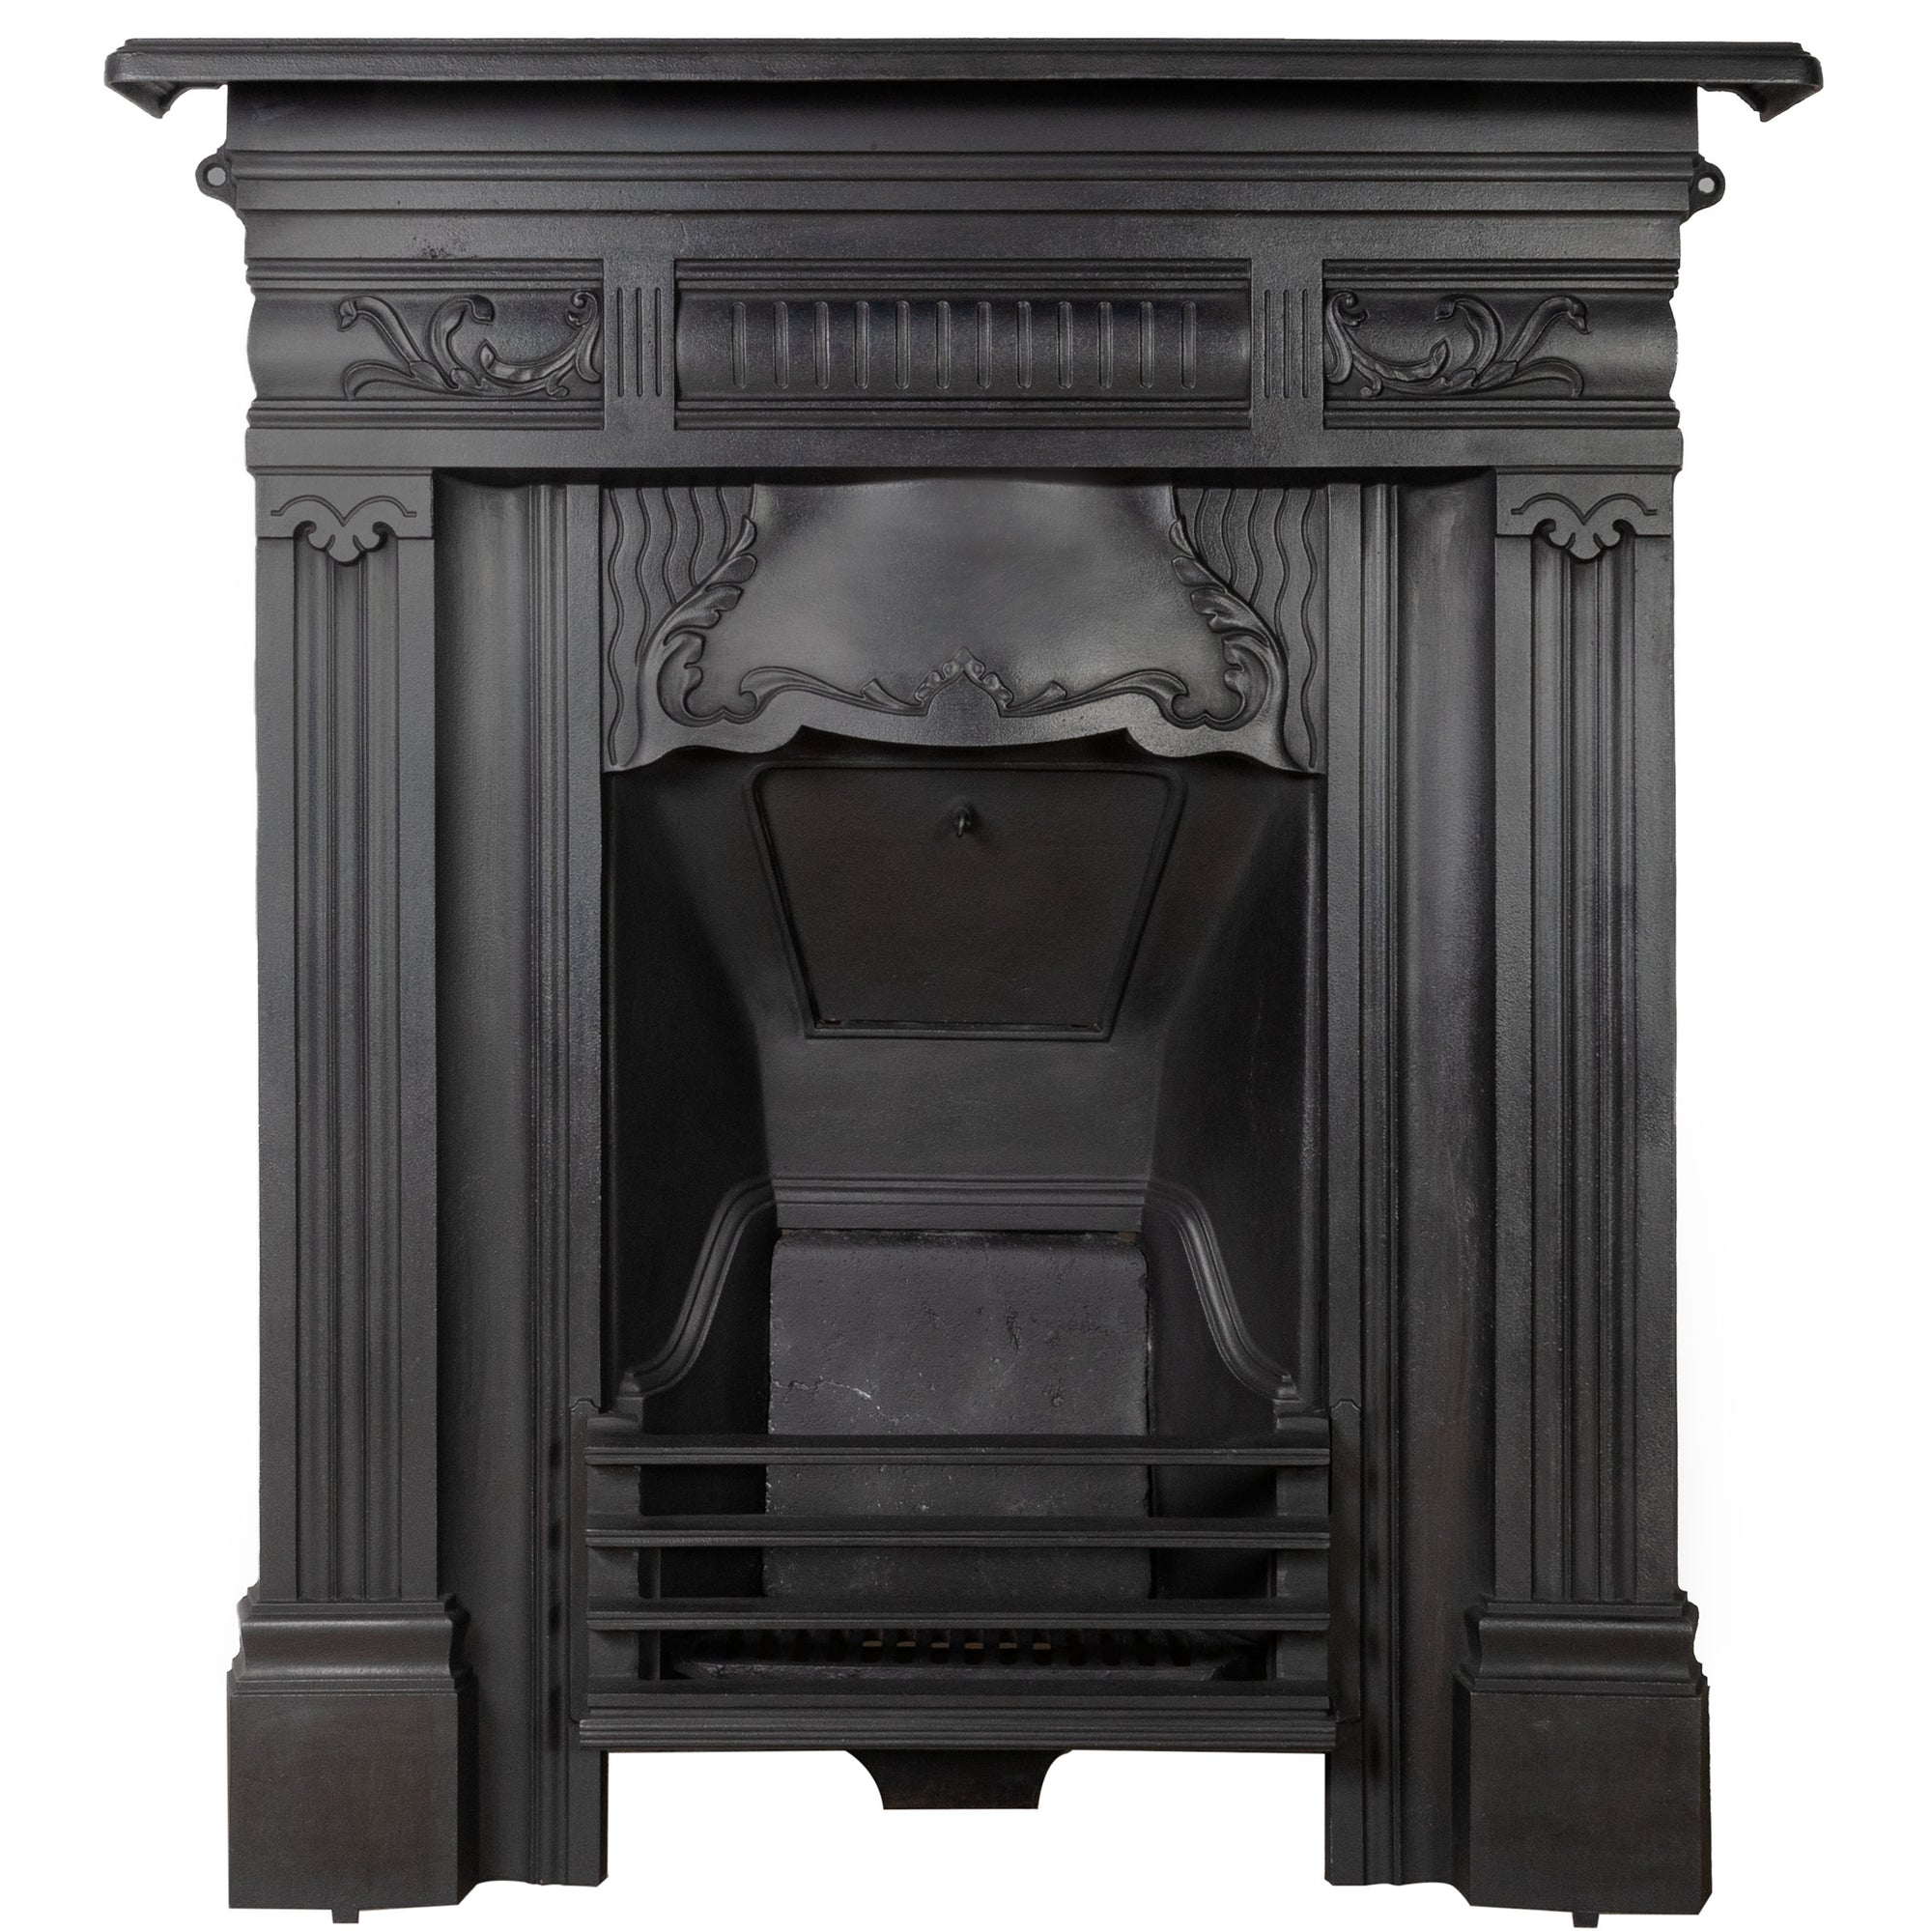 Antique Victorian Cast Iron Combination Fireplace - The Architectural Forum